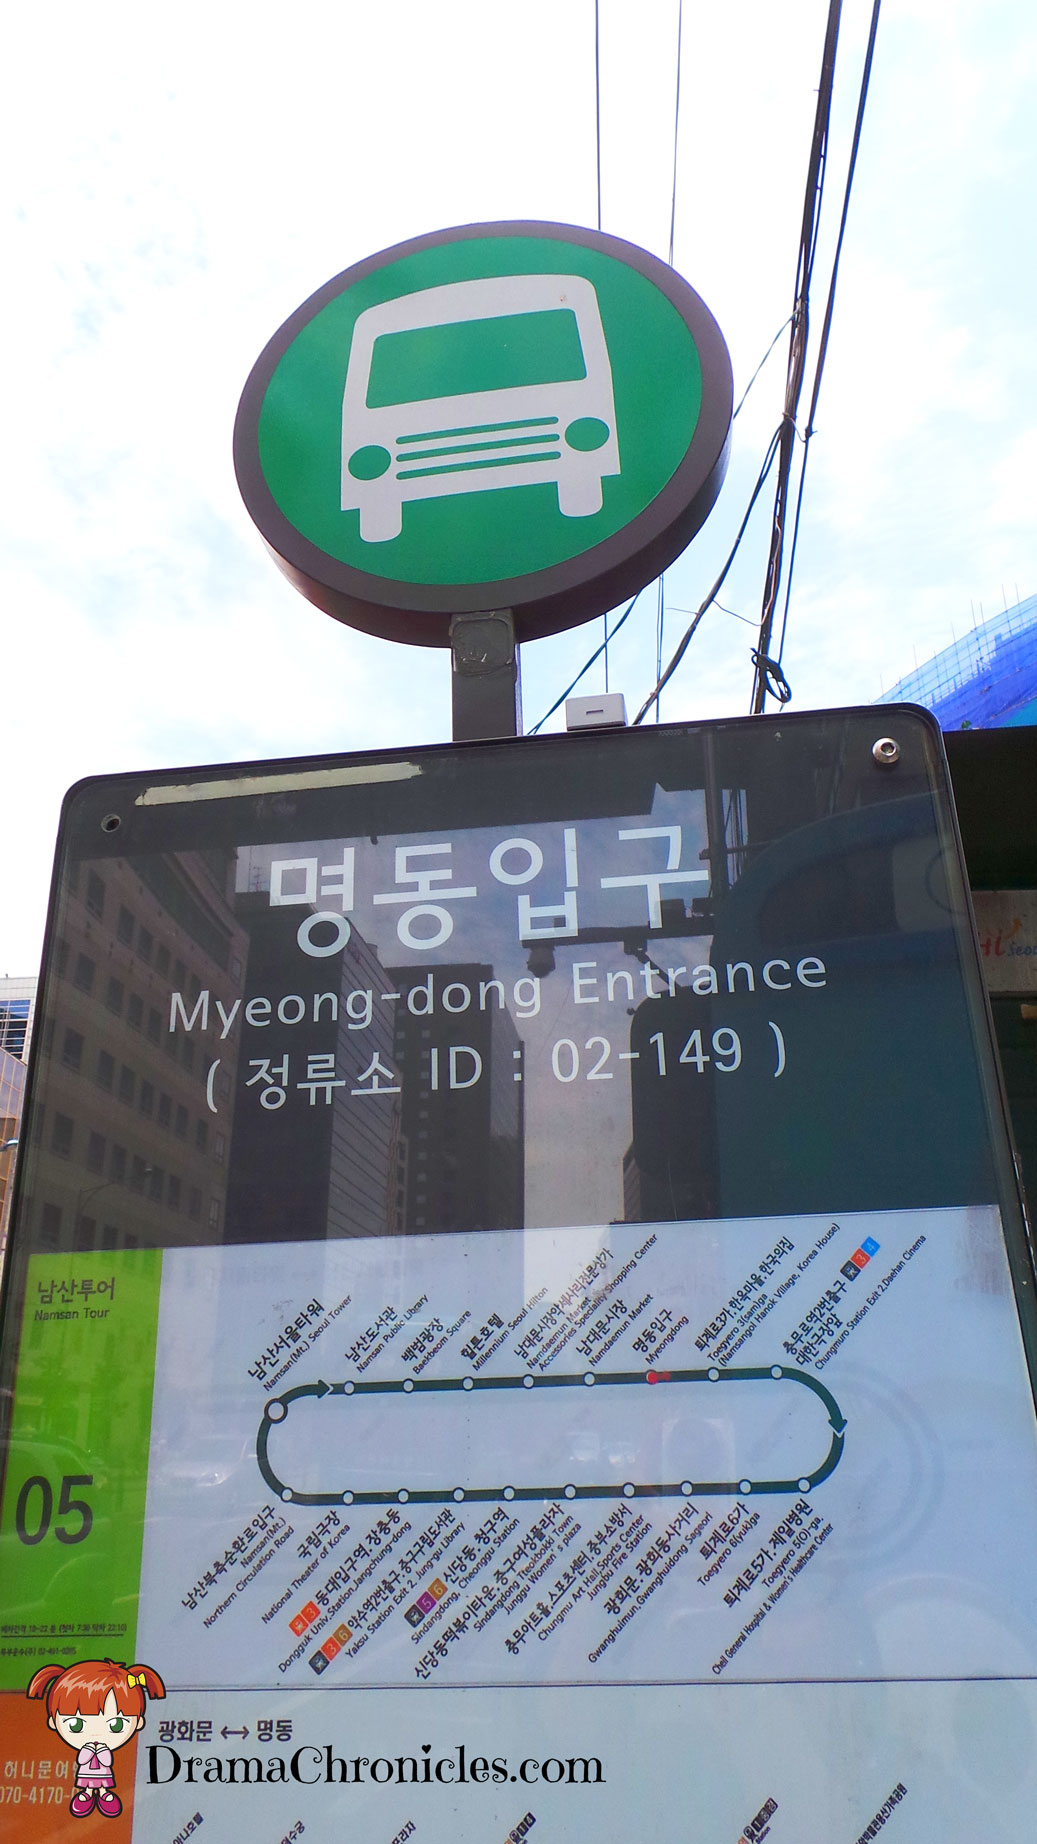 Namsan Circular Shuttle Bus No. 05 Route